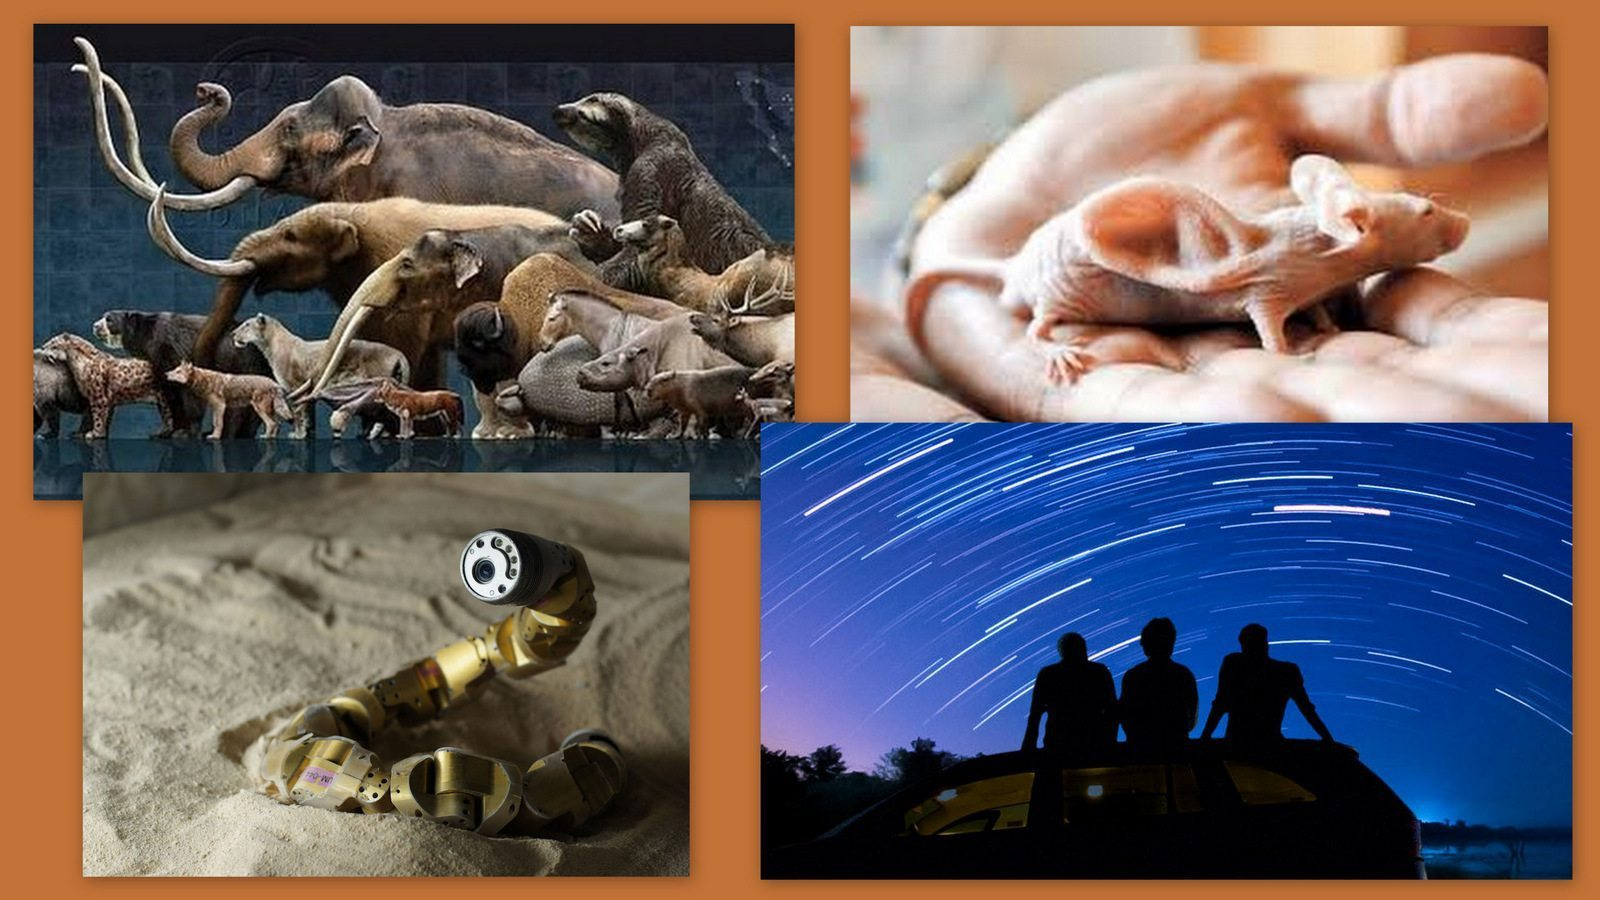 Image: Collage of star gazing,, megafauna animals, and snake robot